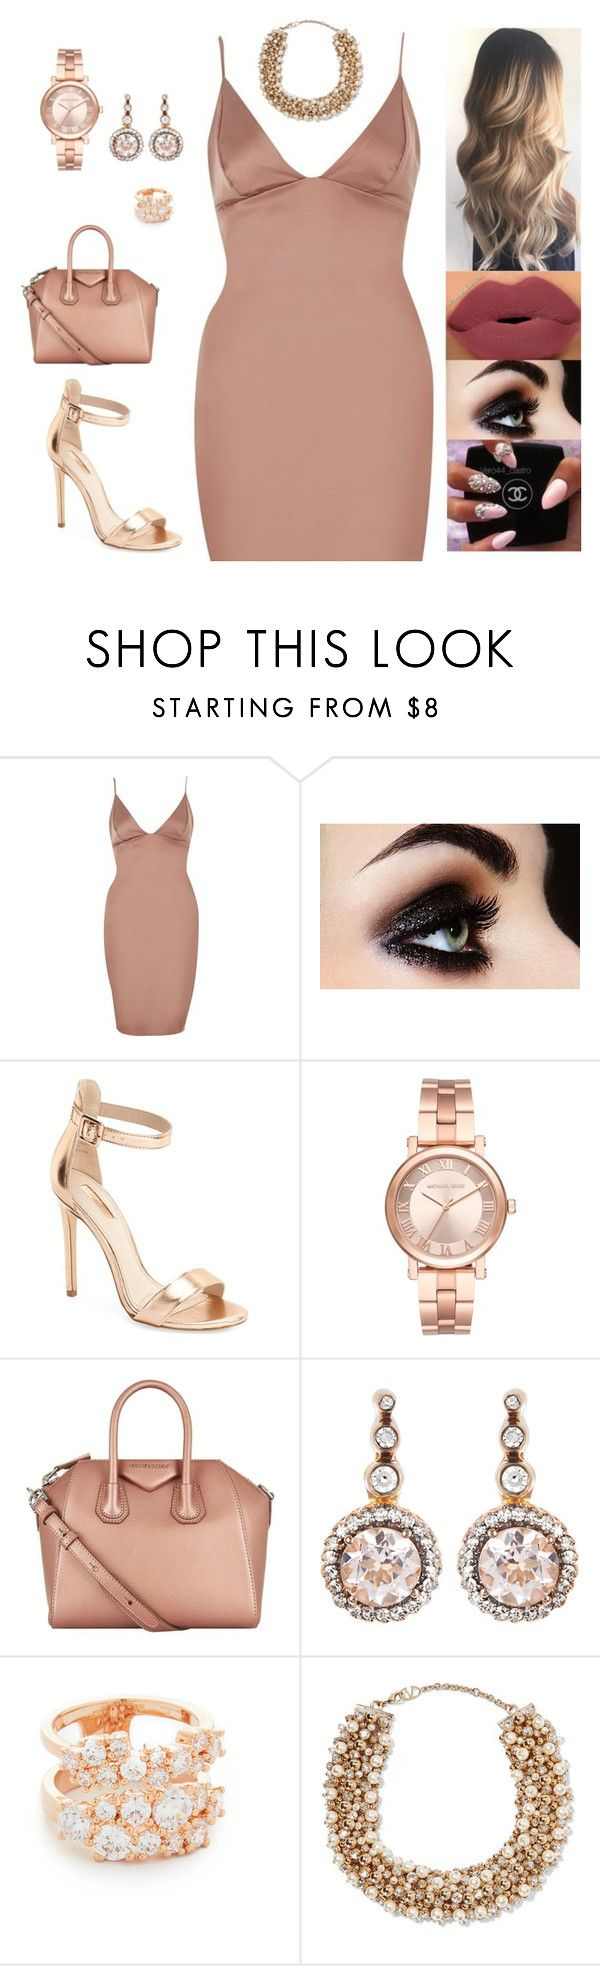 """""""Untitled #4774"""" by sigalv ❤ liked on Polyvore featuring River Island, Topshop, Michael Kors, Givenchy, Selim Mouzannar, Bronzallure and Valentino"""